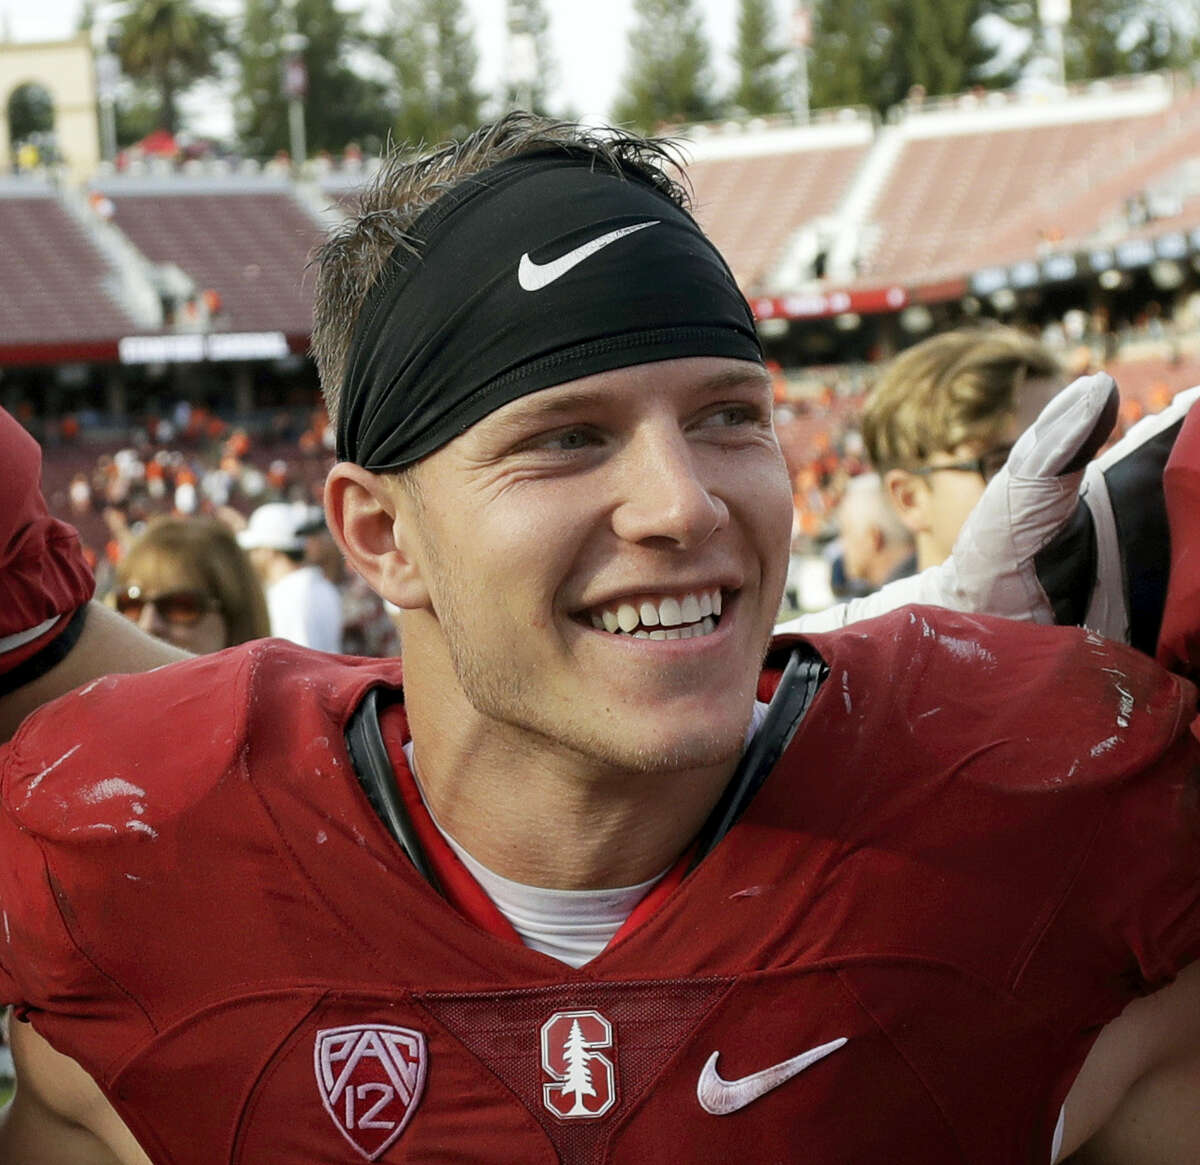 In this Nov. 5 file photo, Stanford running back Christian McCaffrey smiles after Stanford defeated Oregon State 26-15. McCaffrey is done playing college football. Stanford's star running back announced on Twitter on Monday, Dec. 19, 2016, that he will not play in the Sun Bowl game against North Carolina on Dec. 30 in El Paso, Texas.